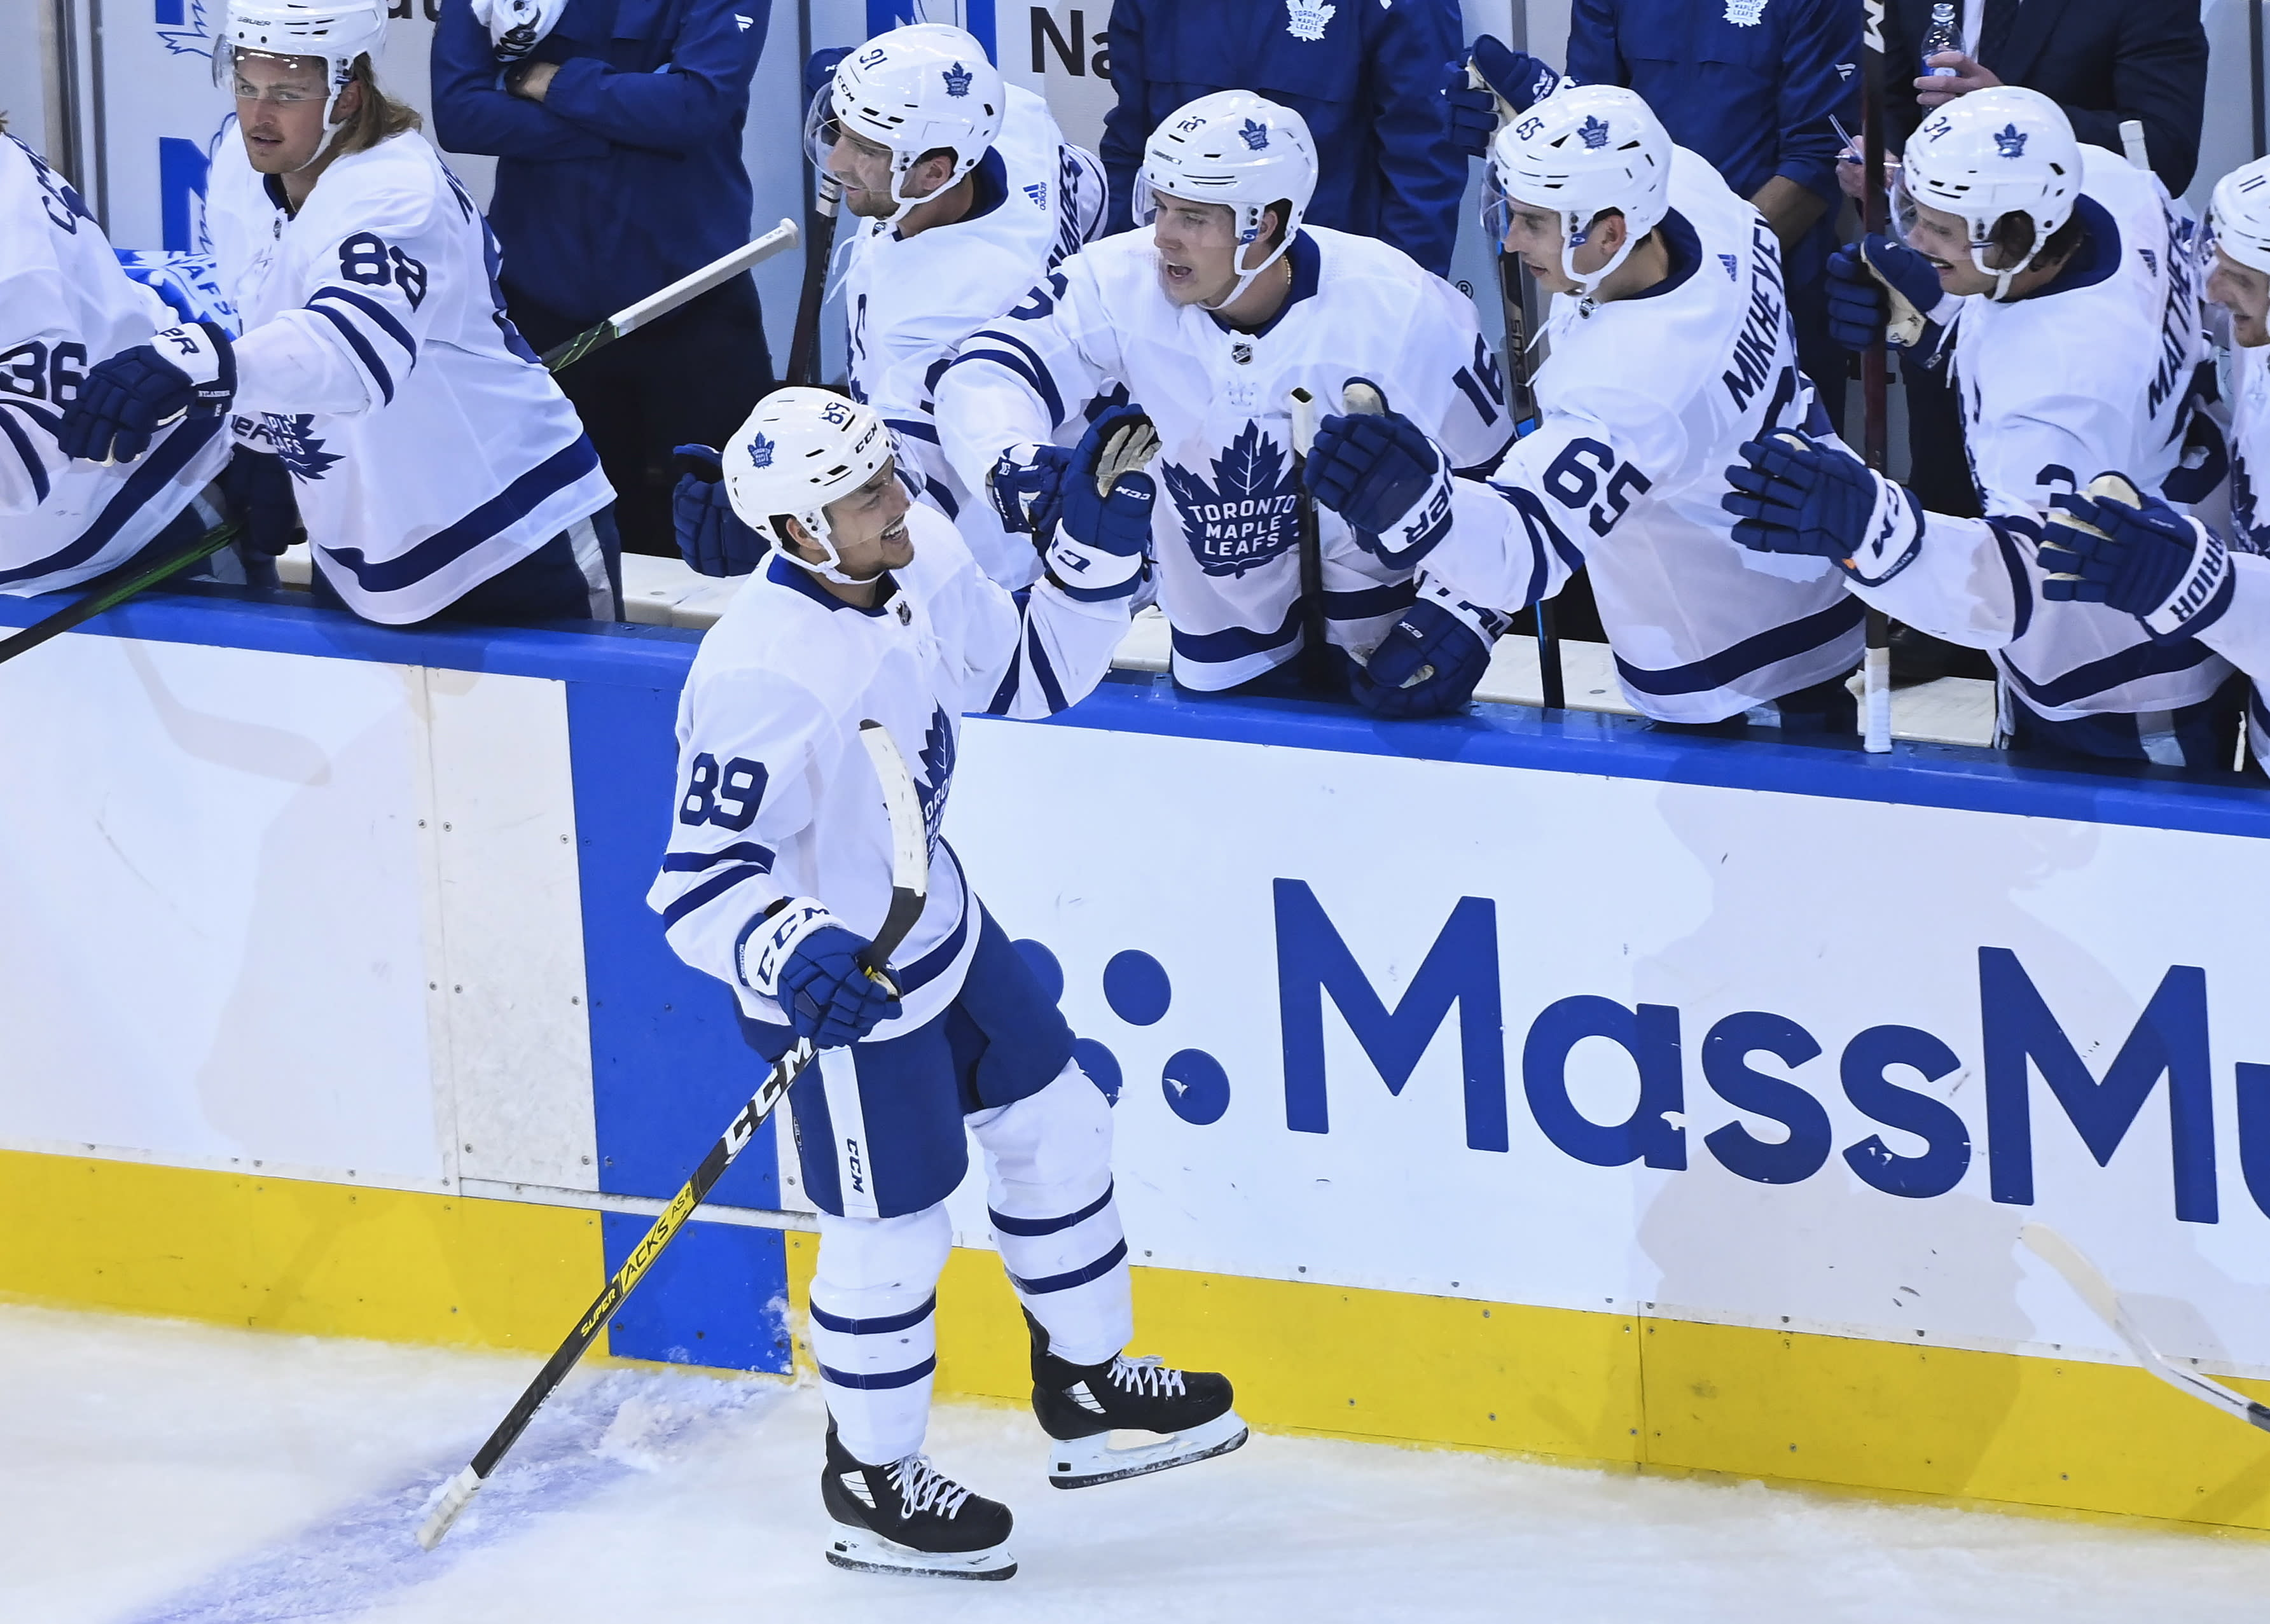 Toronto Maple Leafs left wing Nicholas Robertson (89) celebrates his first NHL goal with teammates during the second period of an NHL hockey playoff game against the Columbus Blue Jackets Thursday, Aug. 6, 2020, in Toronto. (Nathan Denette/The Canadian Press via AP)